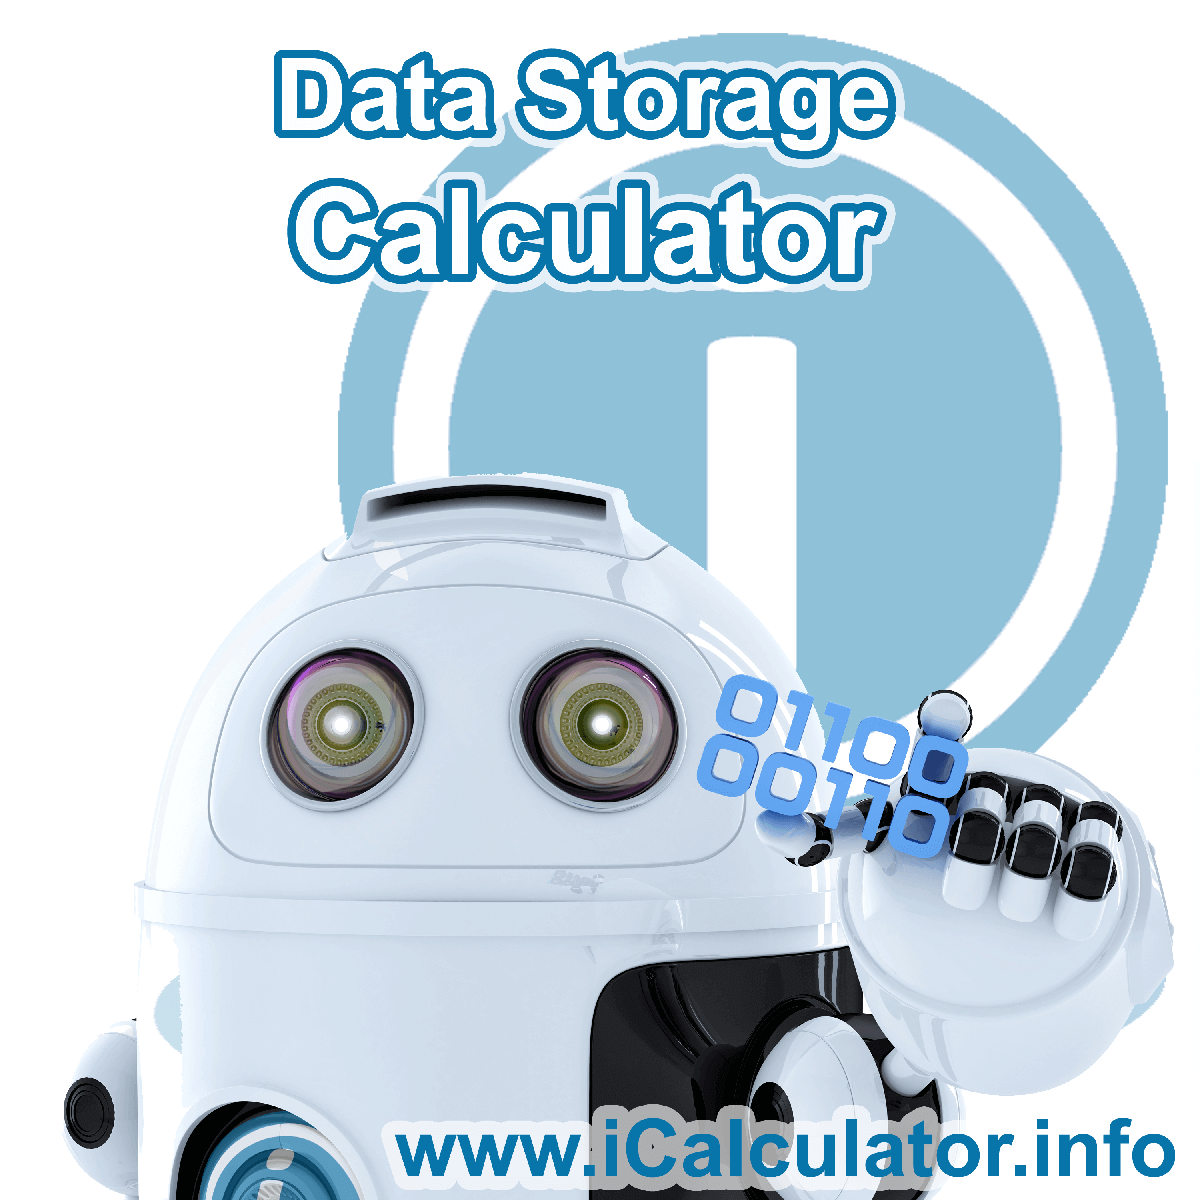 Data Storage Conversion Calculator: This image shows Data Storage Conversion Formula with associated calculations used by the Data Storage Conversion Calculator